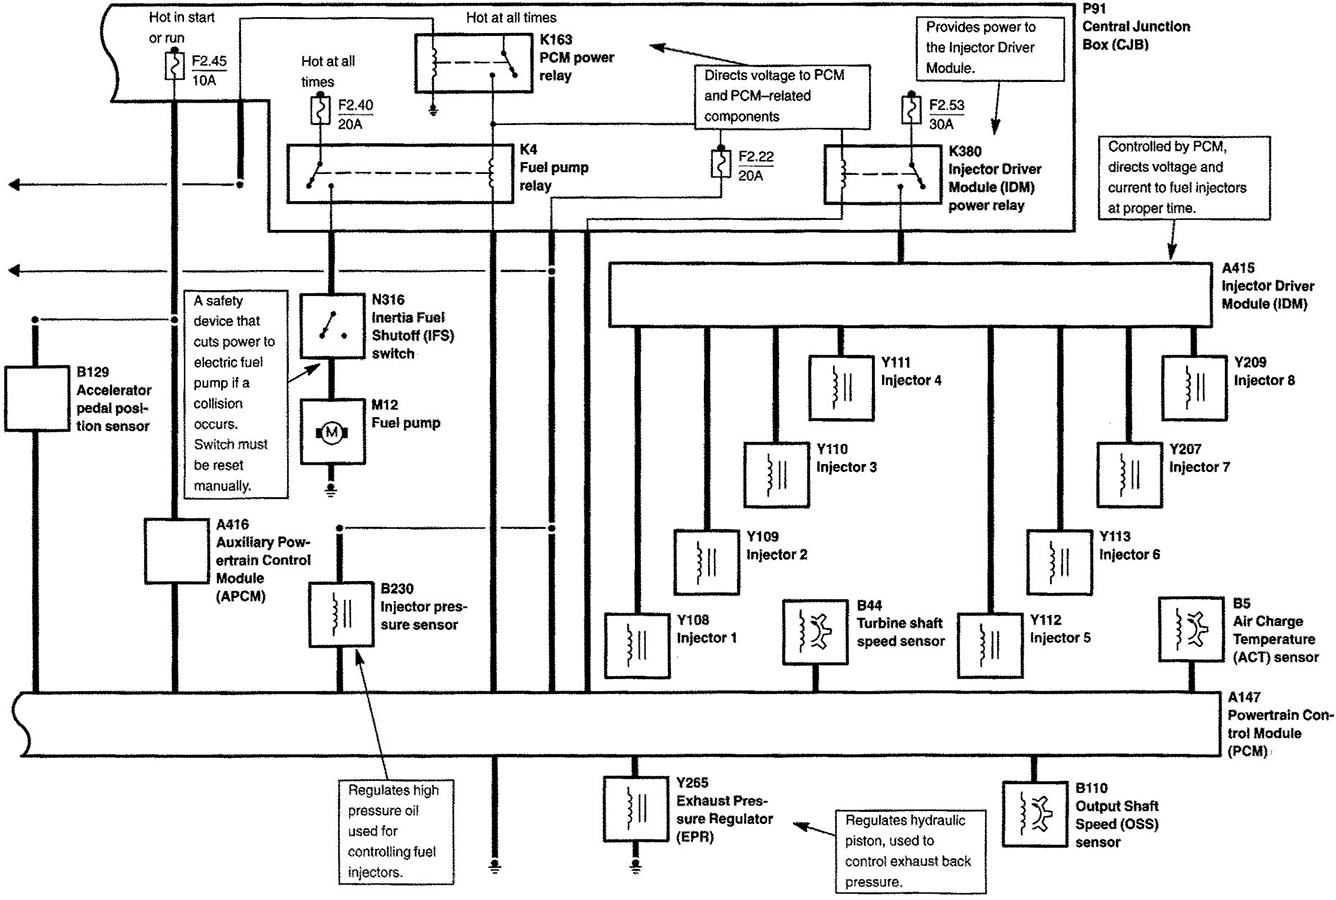 2012 05 30_222627_f250o103a1 f450 wiring diagram trailer wiring diagram \u2022 wiring diagrams j 1999 ford f450 wiring diagram at reclaimingppi.co